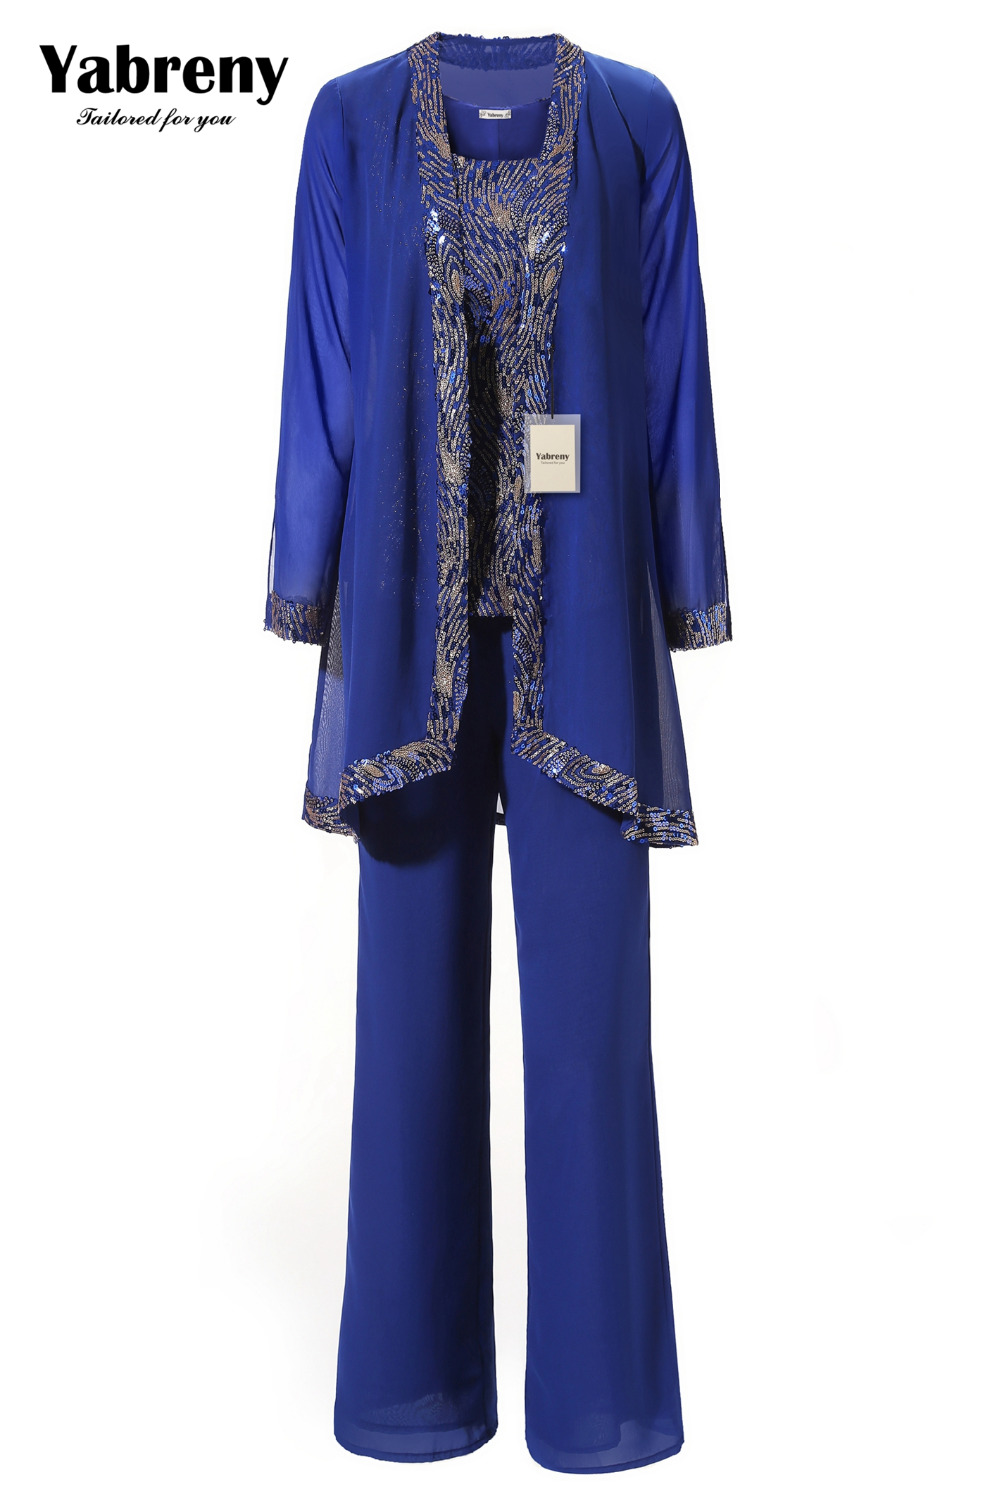 US $162.0  Yabreny Sequins Outfit Mother of bride trousers Special occasion  dressey Plus size Royal blue outfit MT001707 1-in Mother of the Bride ...